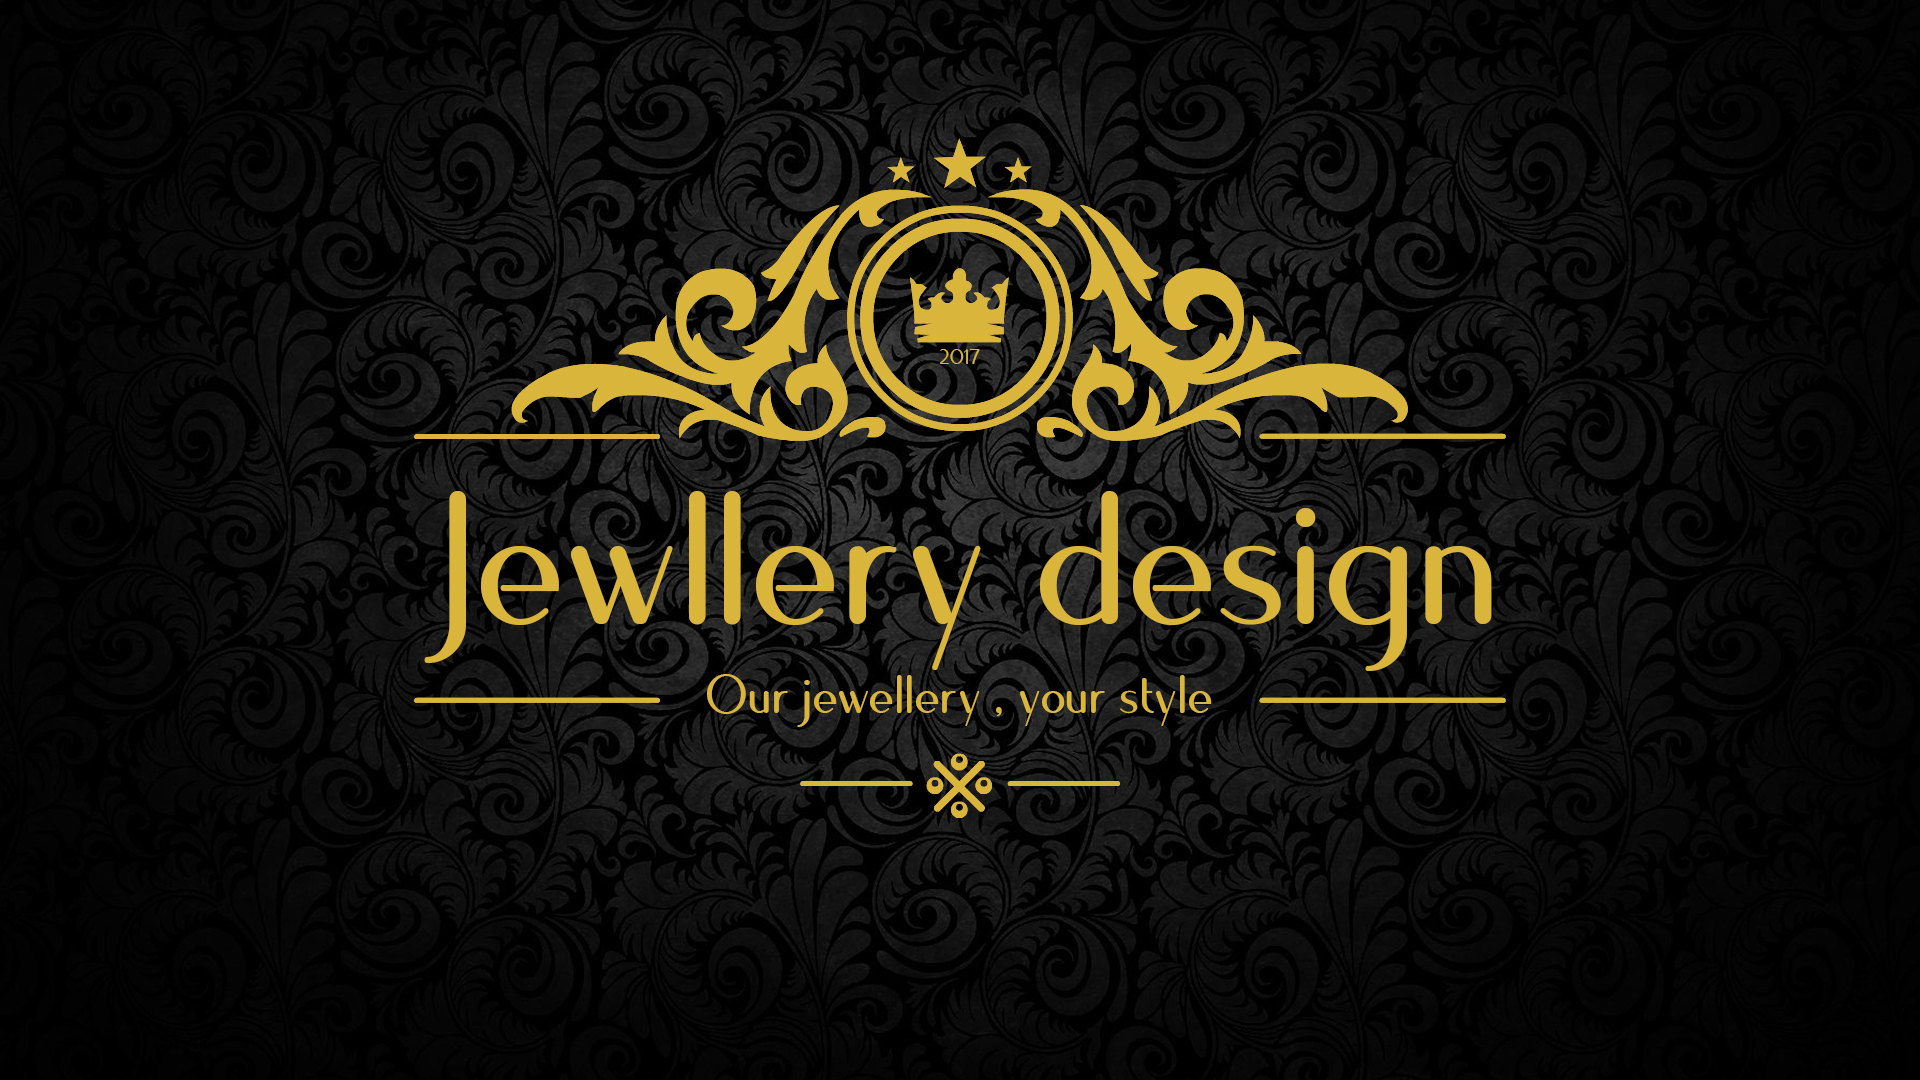 this is jewellery design i create 2D/3D